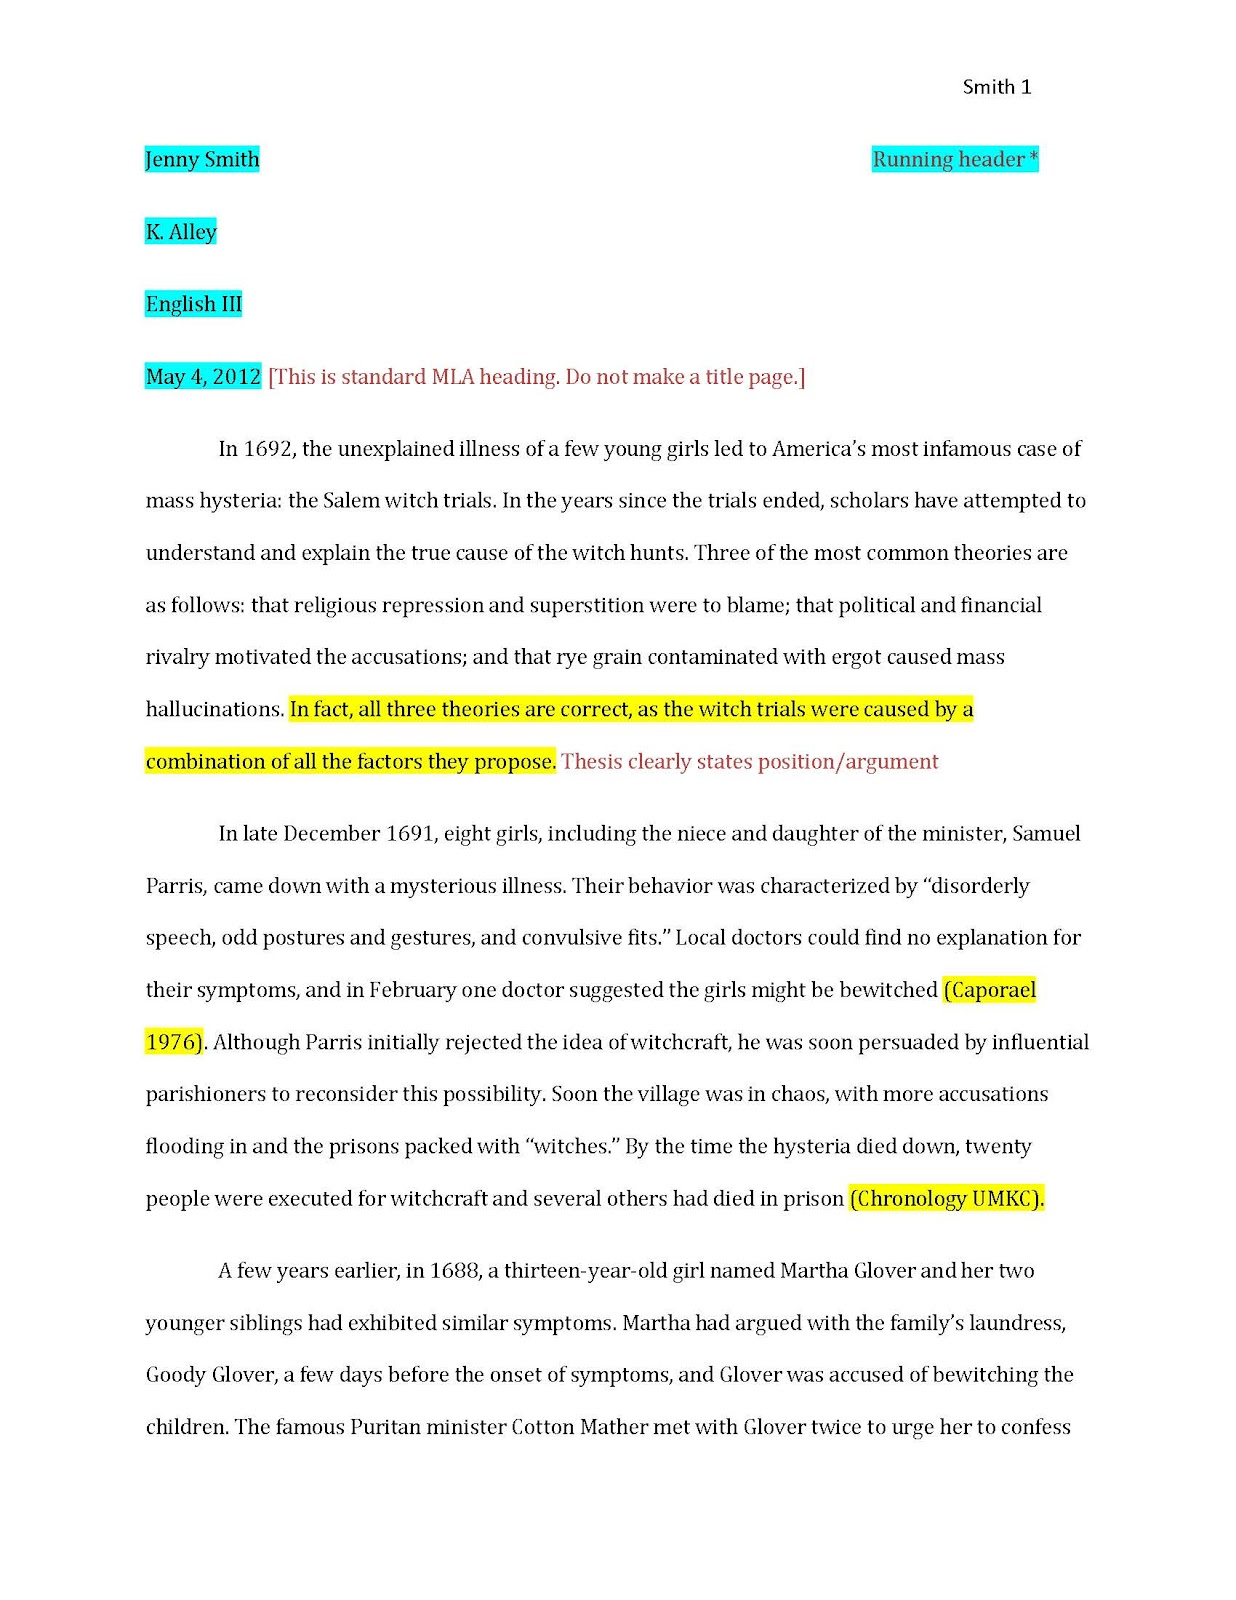 research paper parenthetical citations These citations that are found in the body of a research paper are called in-text, or parenthetical citations your research paper or essay should have a one-inch margin on the top, bottom, left, and right sides of the paper.